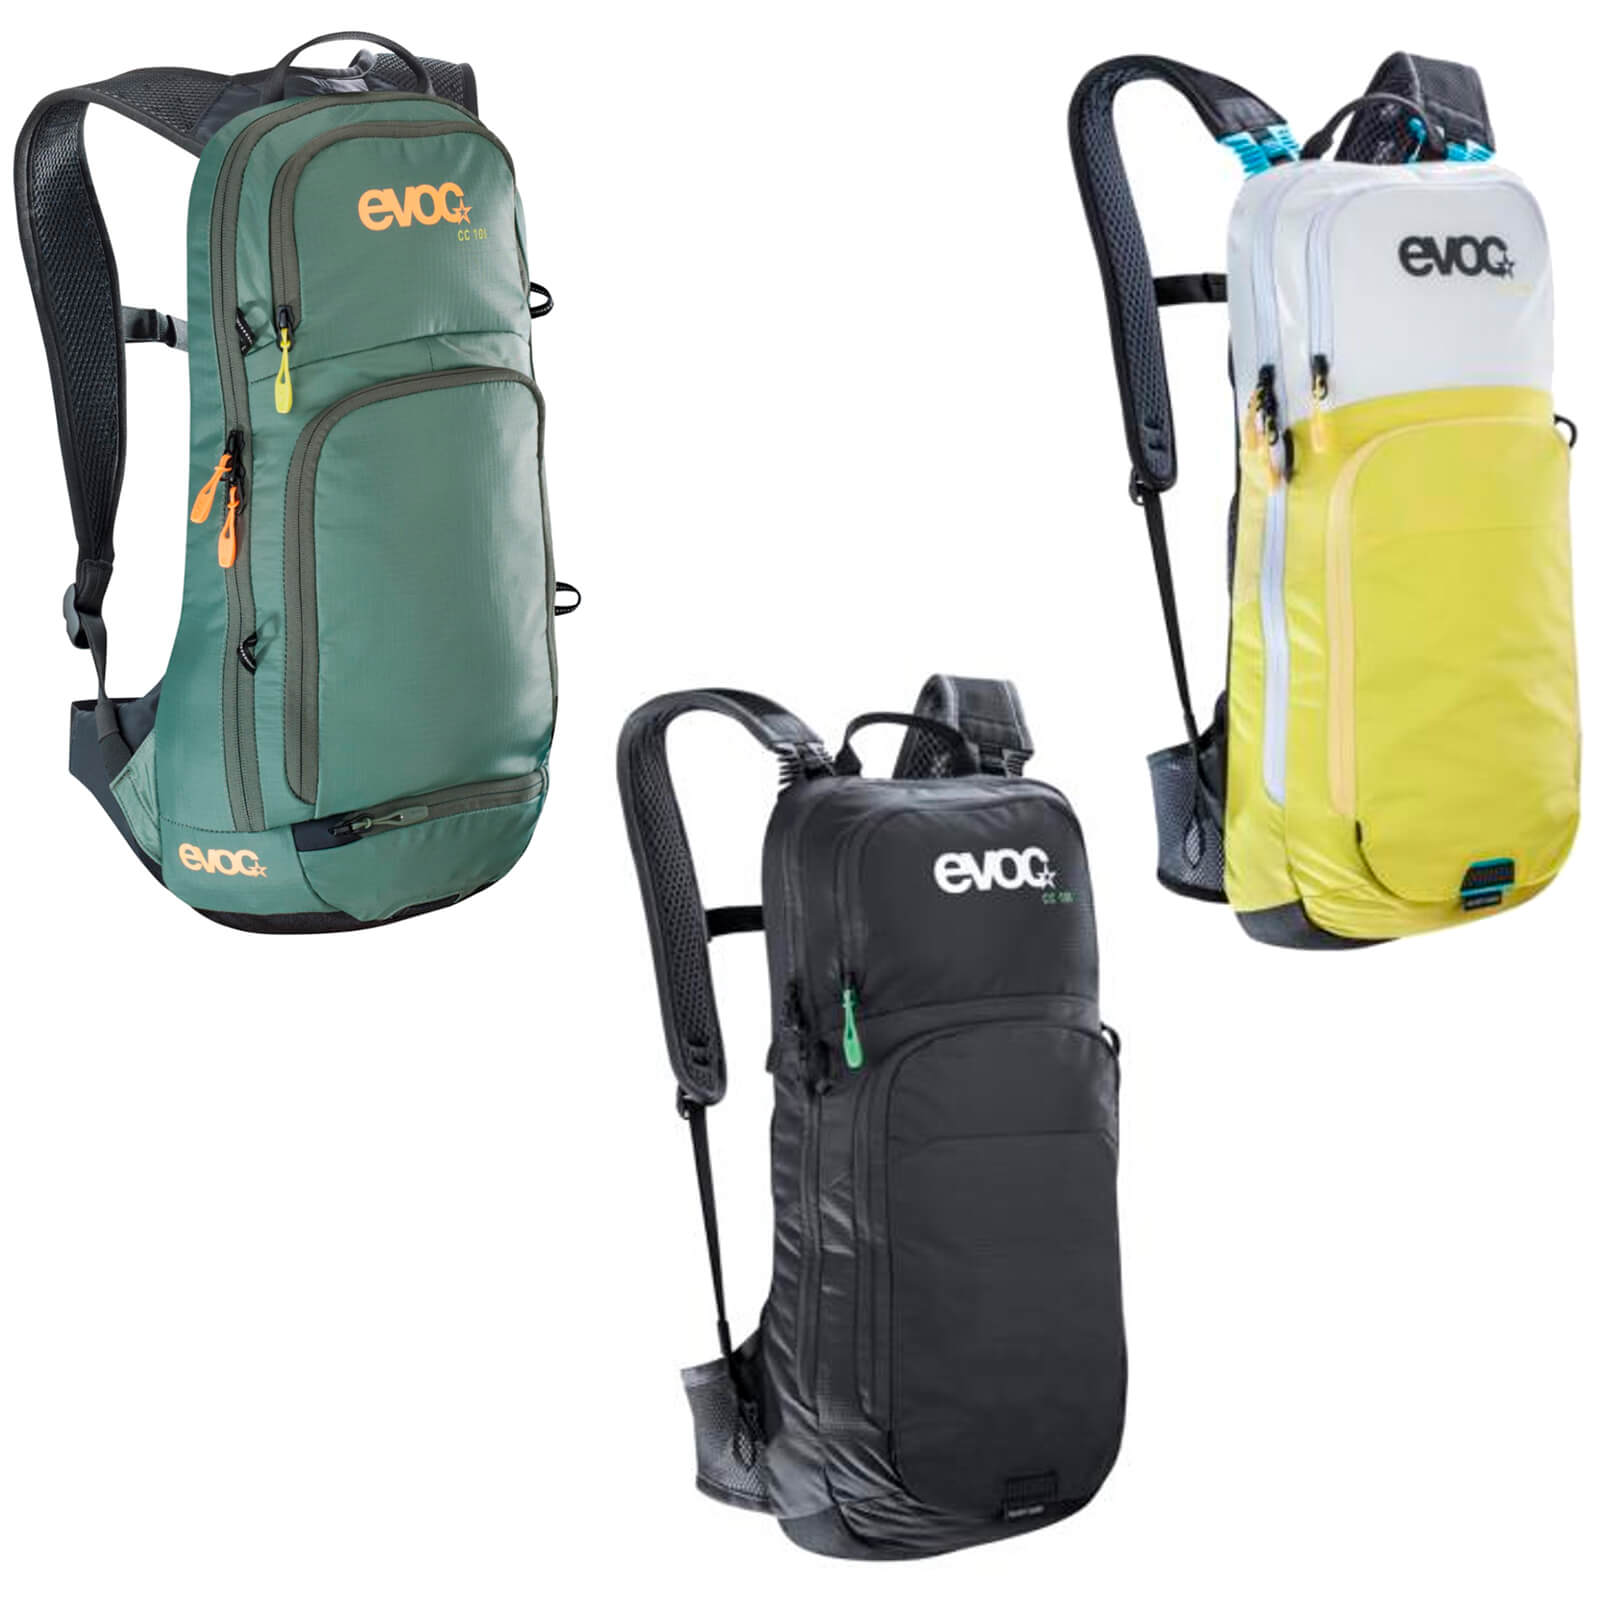 Evoc CC 10L Backpack and 2L Bladder - Slate/Olive